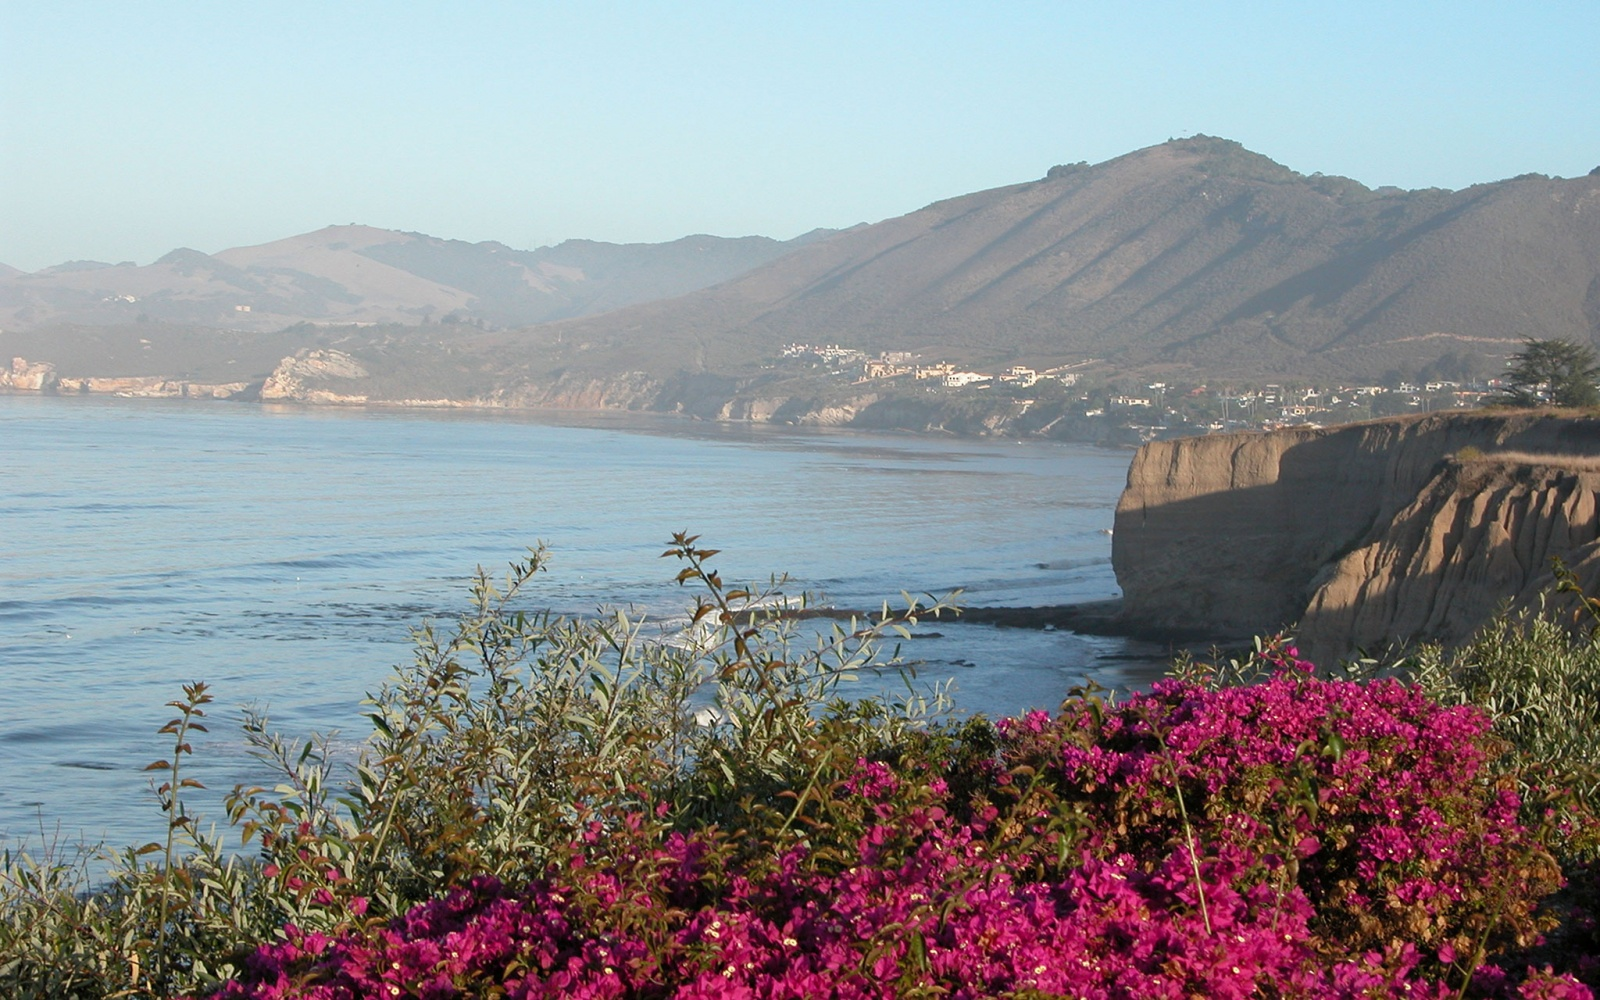 Avila Beach, California